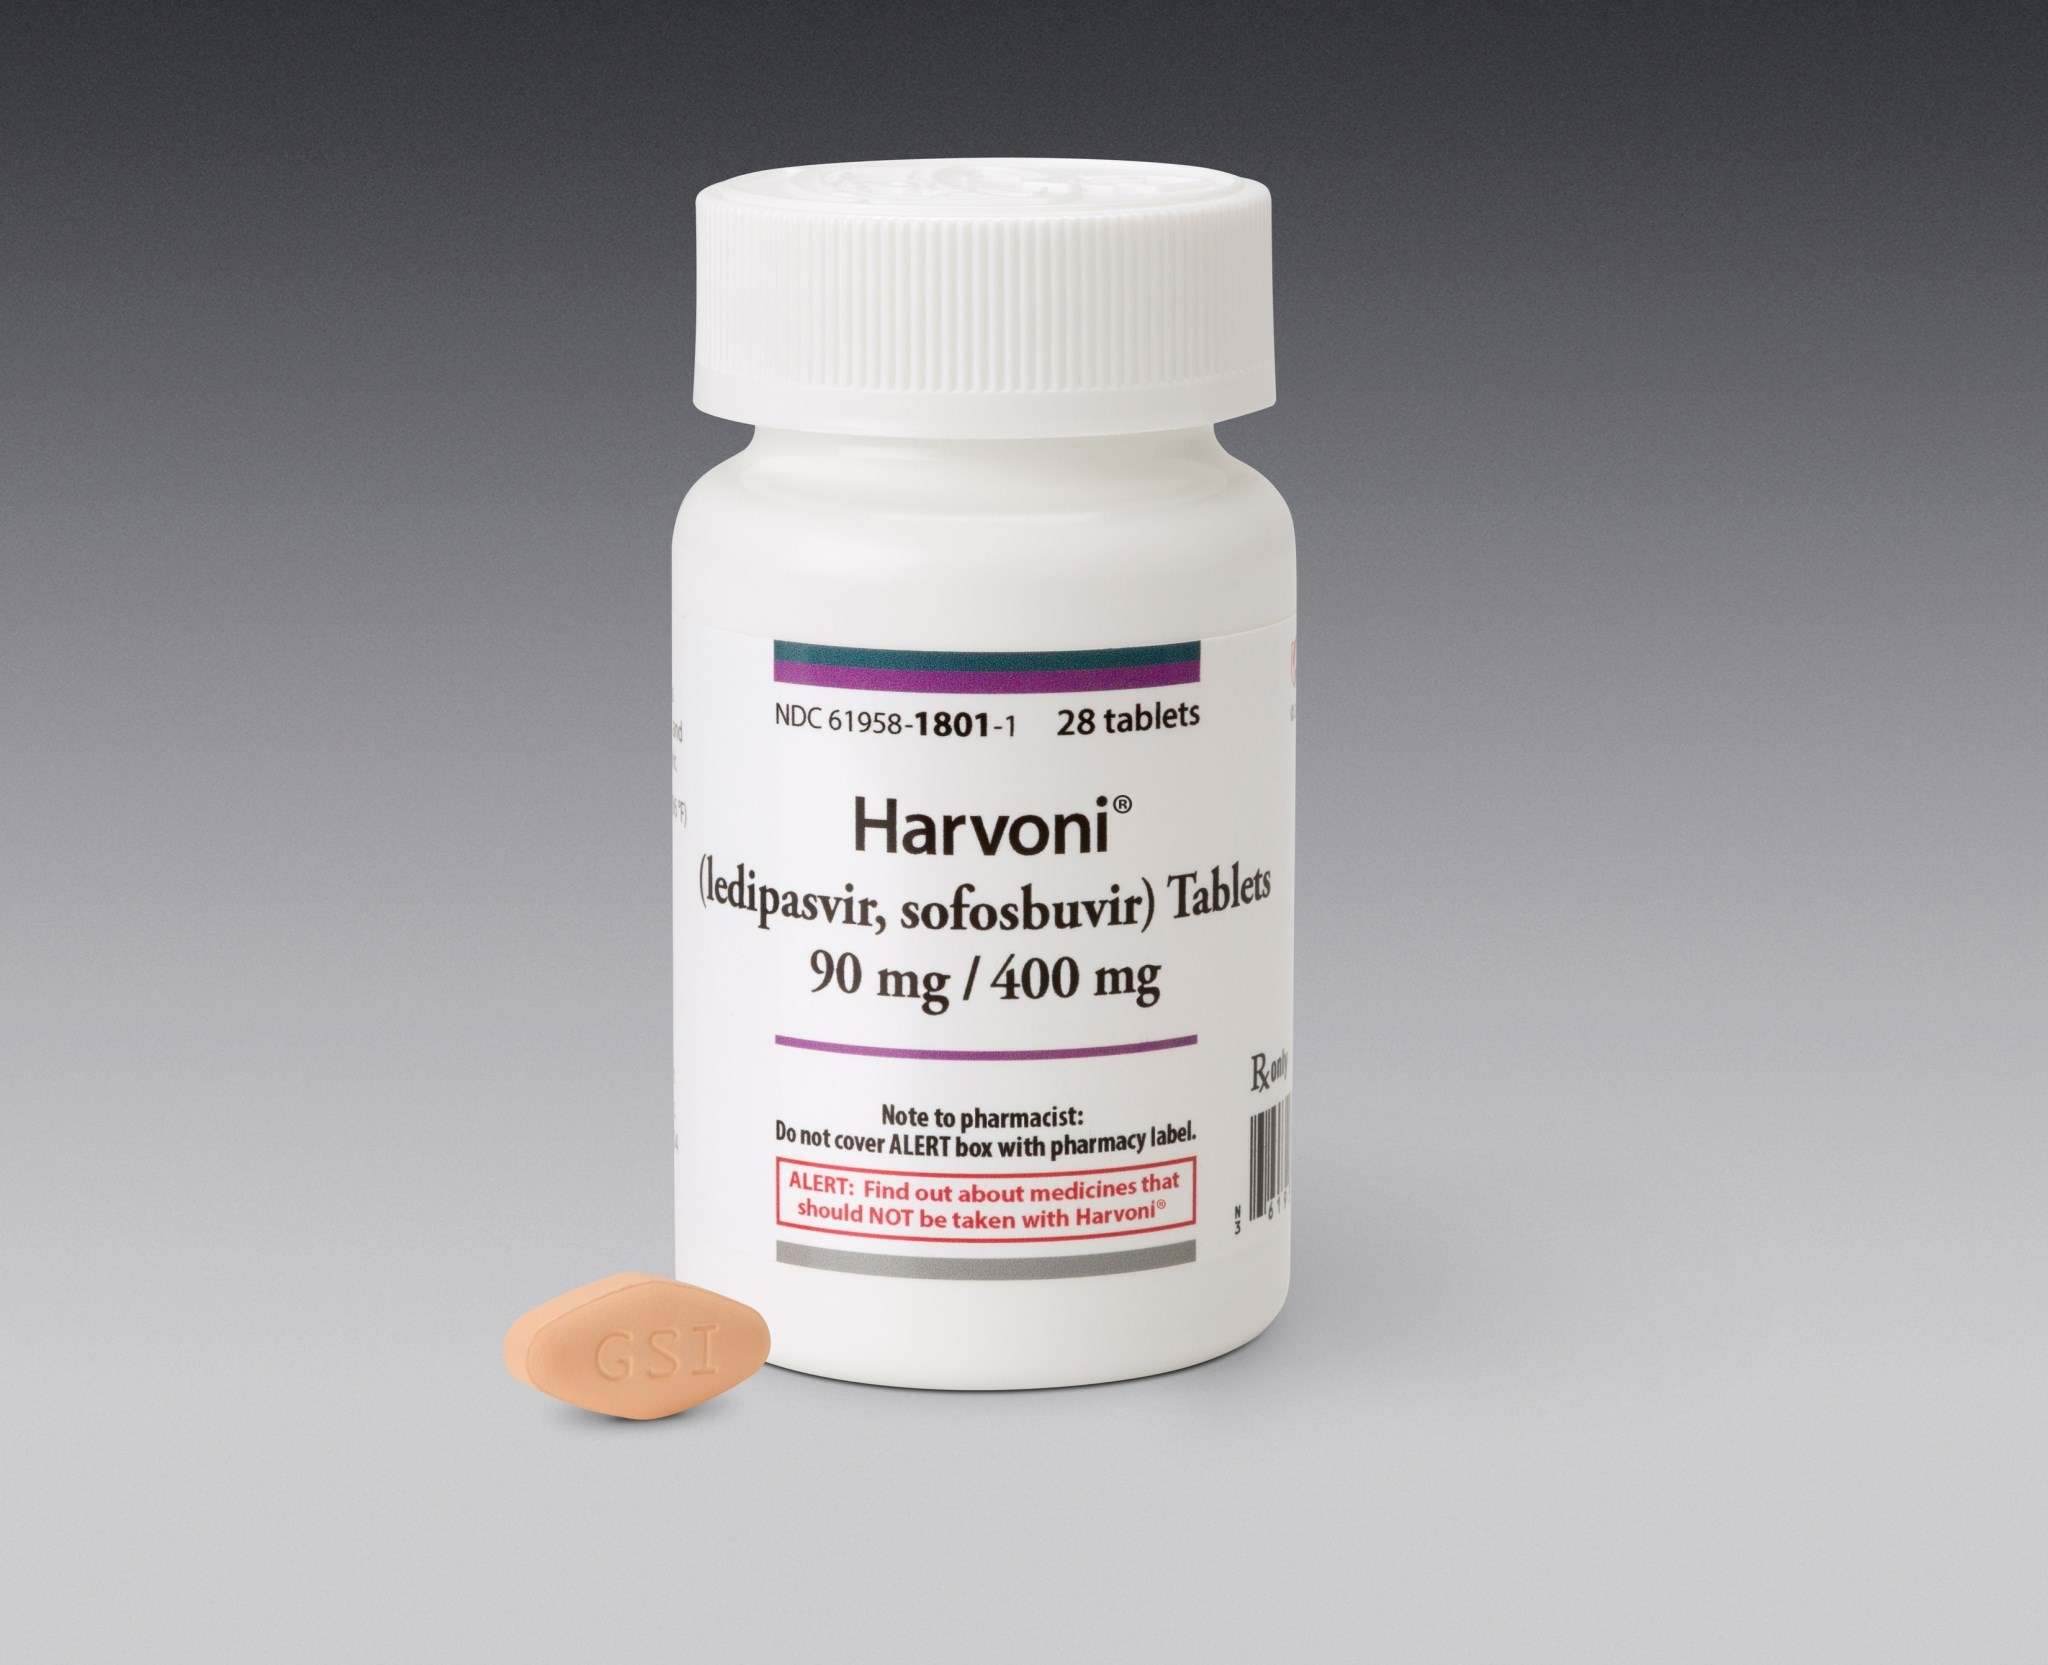 Gilead's hepatitis-C treatment Harvoni